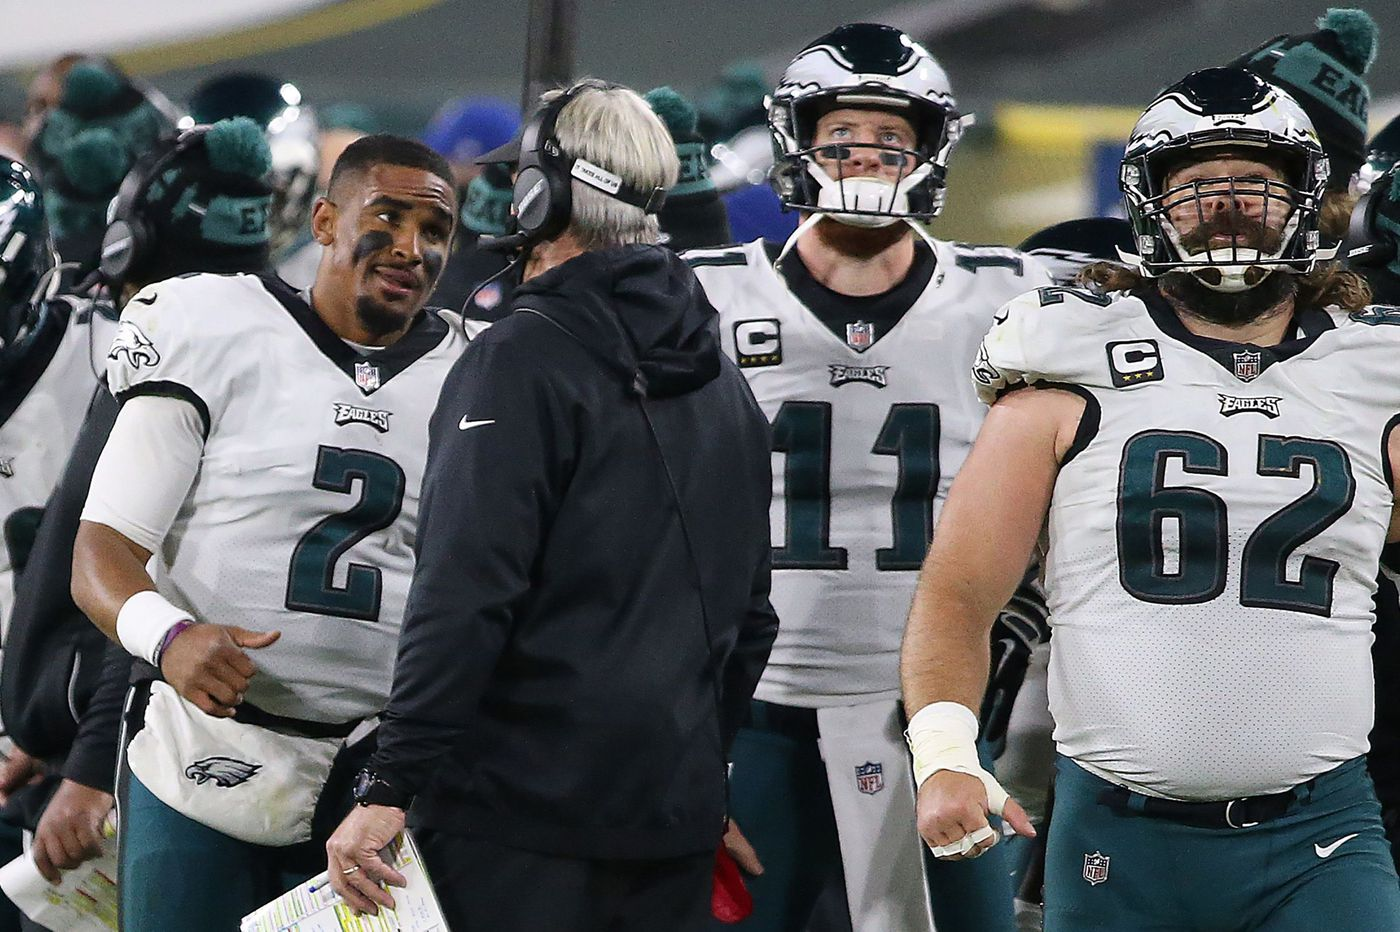 Eagles' Doug Pederson: 'I've got a ton of confidence in Carson Wentz and always have'